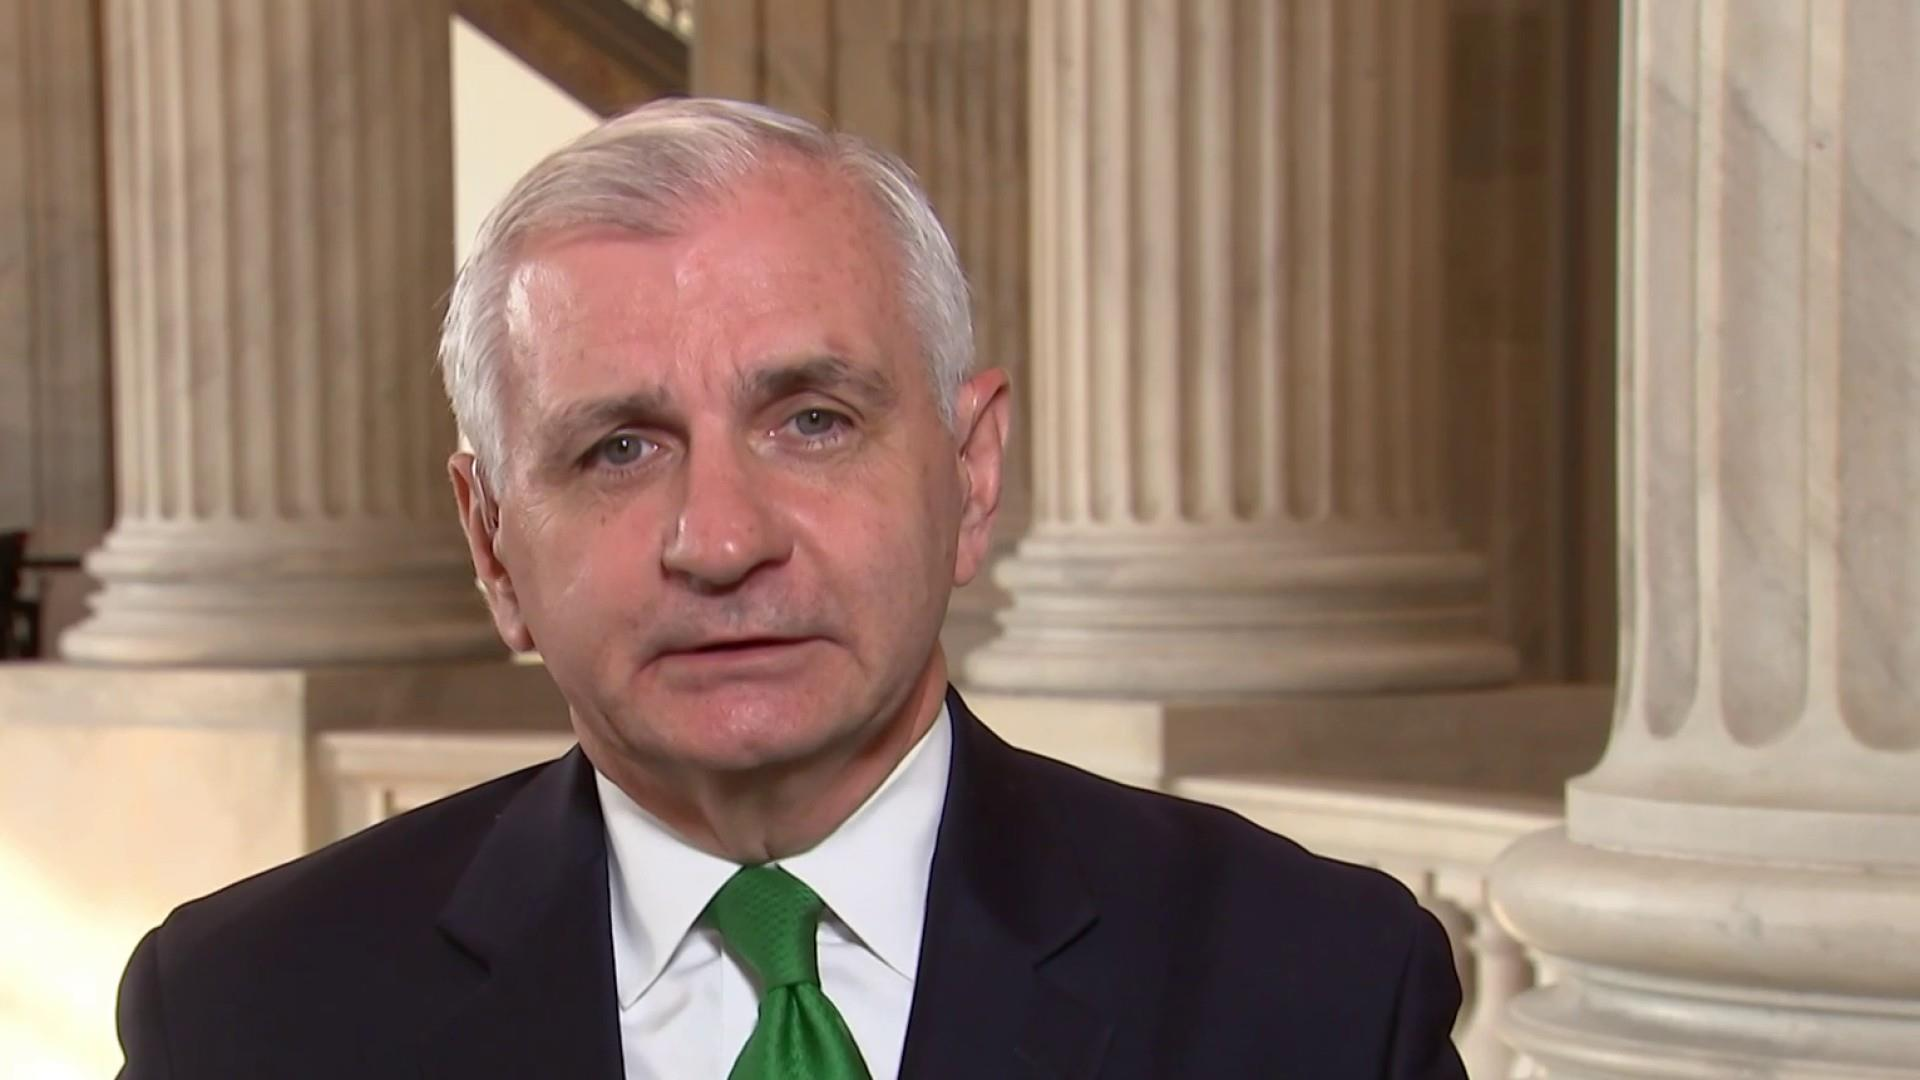 Full Jack Reed Interview: Senate is losing 'powerful voices'